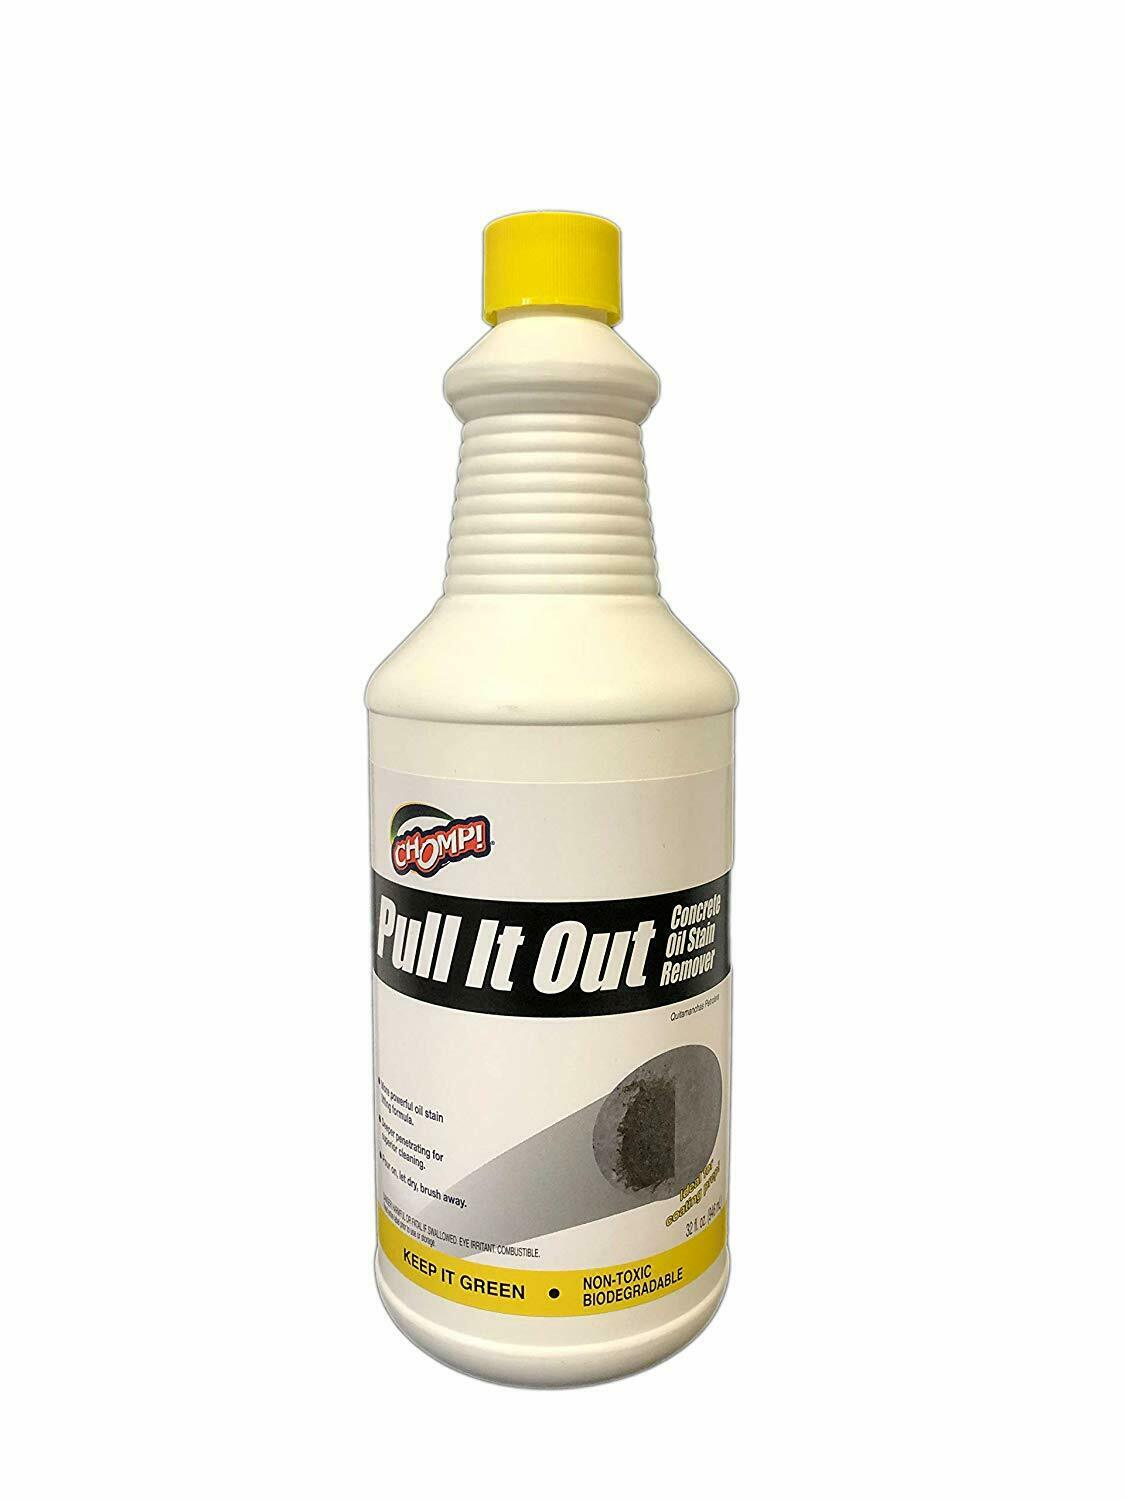 Chomp 52019 Pull It Out Concrete Oil Stain Remover 6962